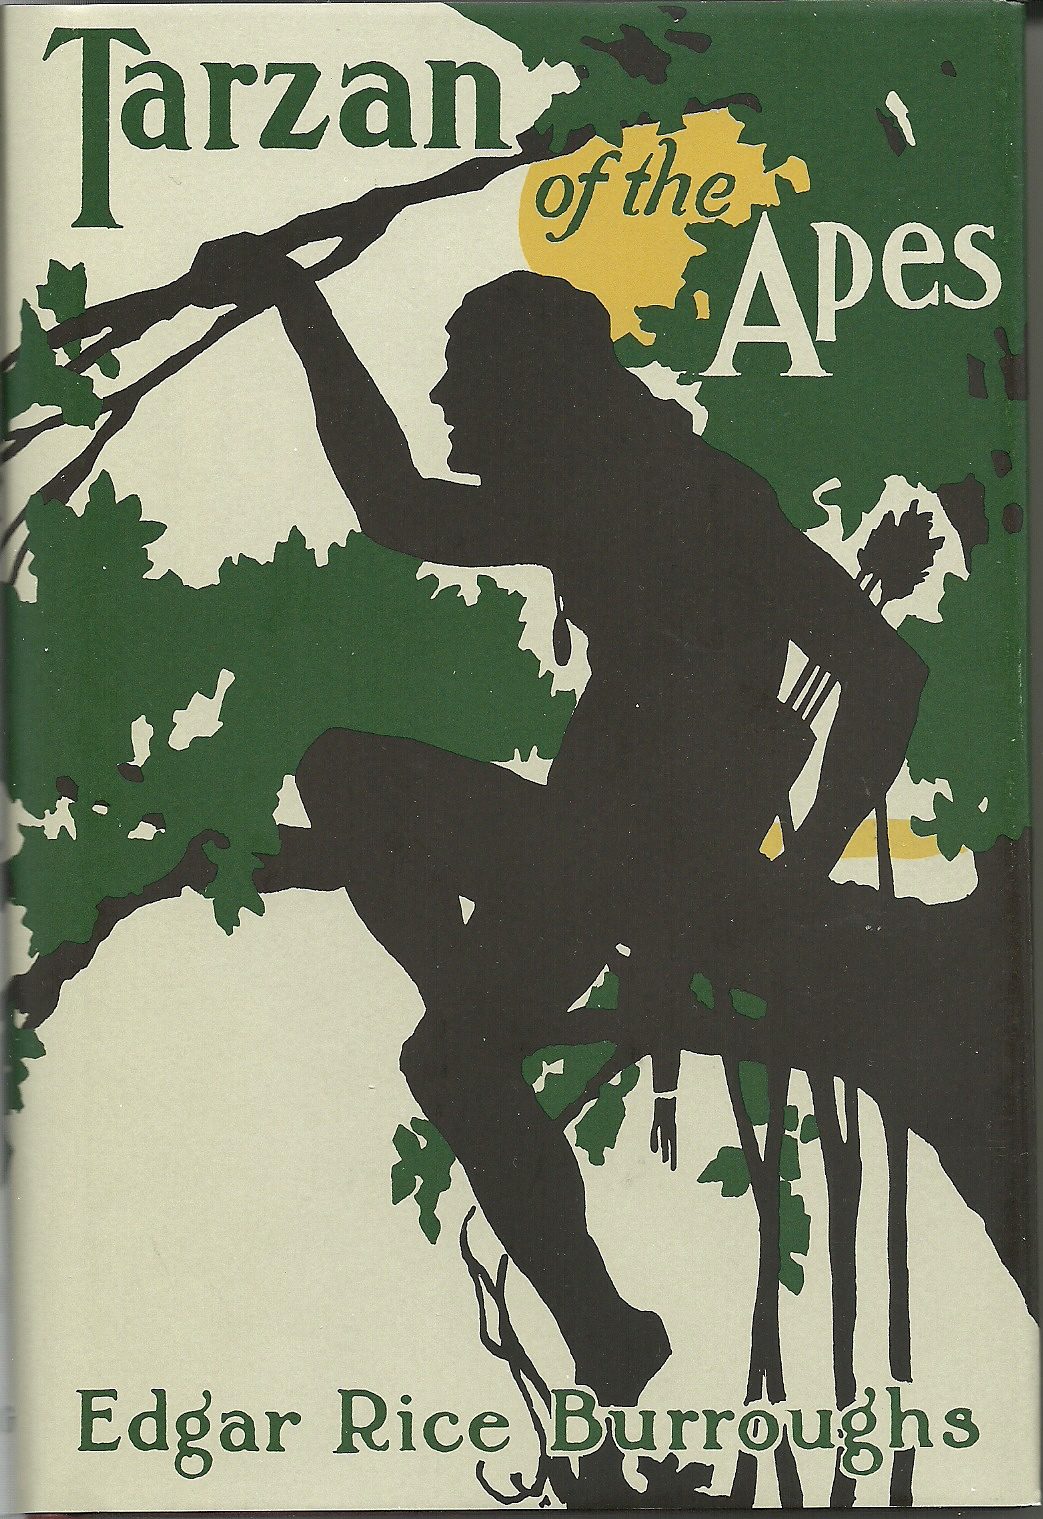 Tarzan of the Apes ~ A Capsule Book Review | Literary Fictions